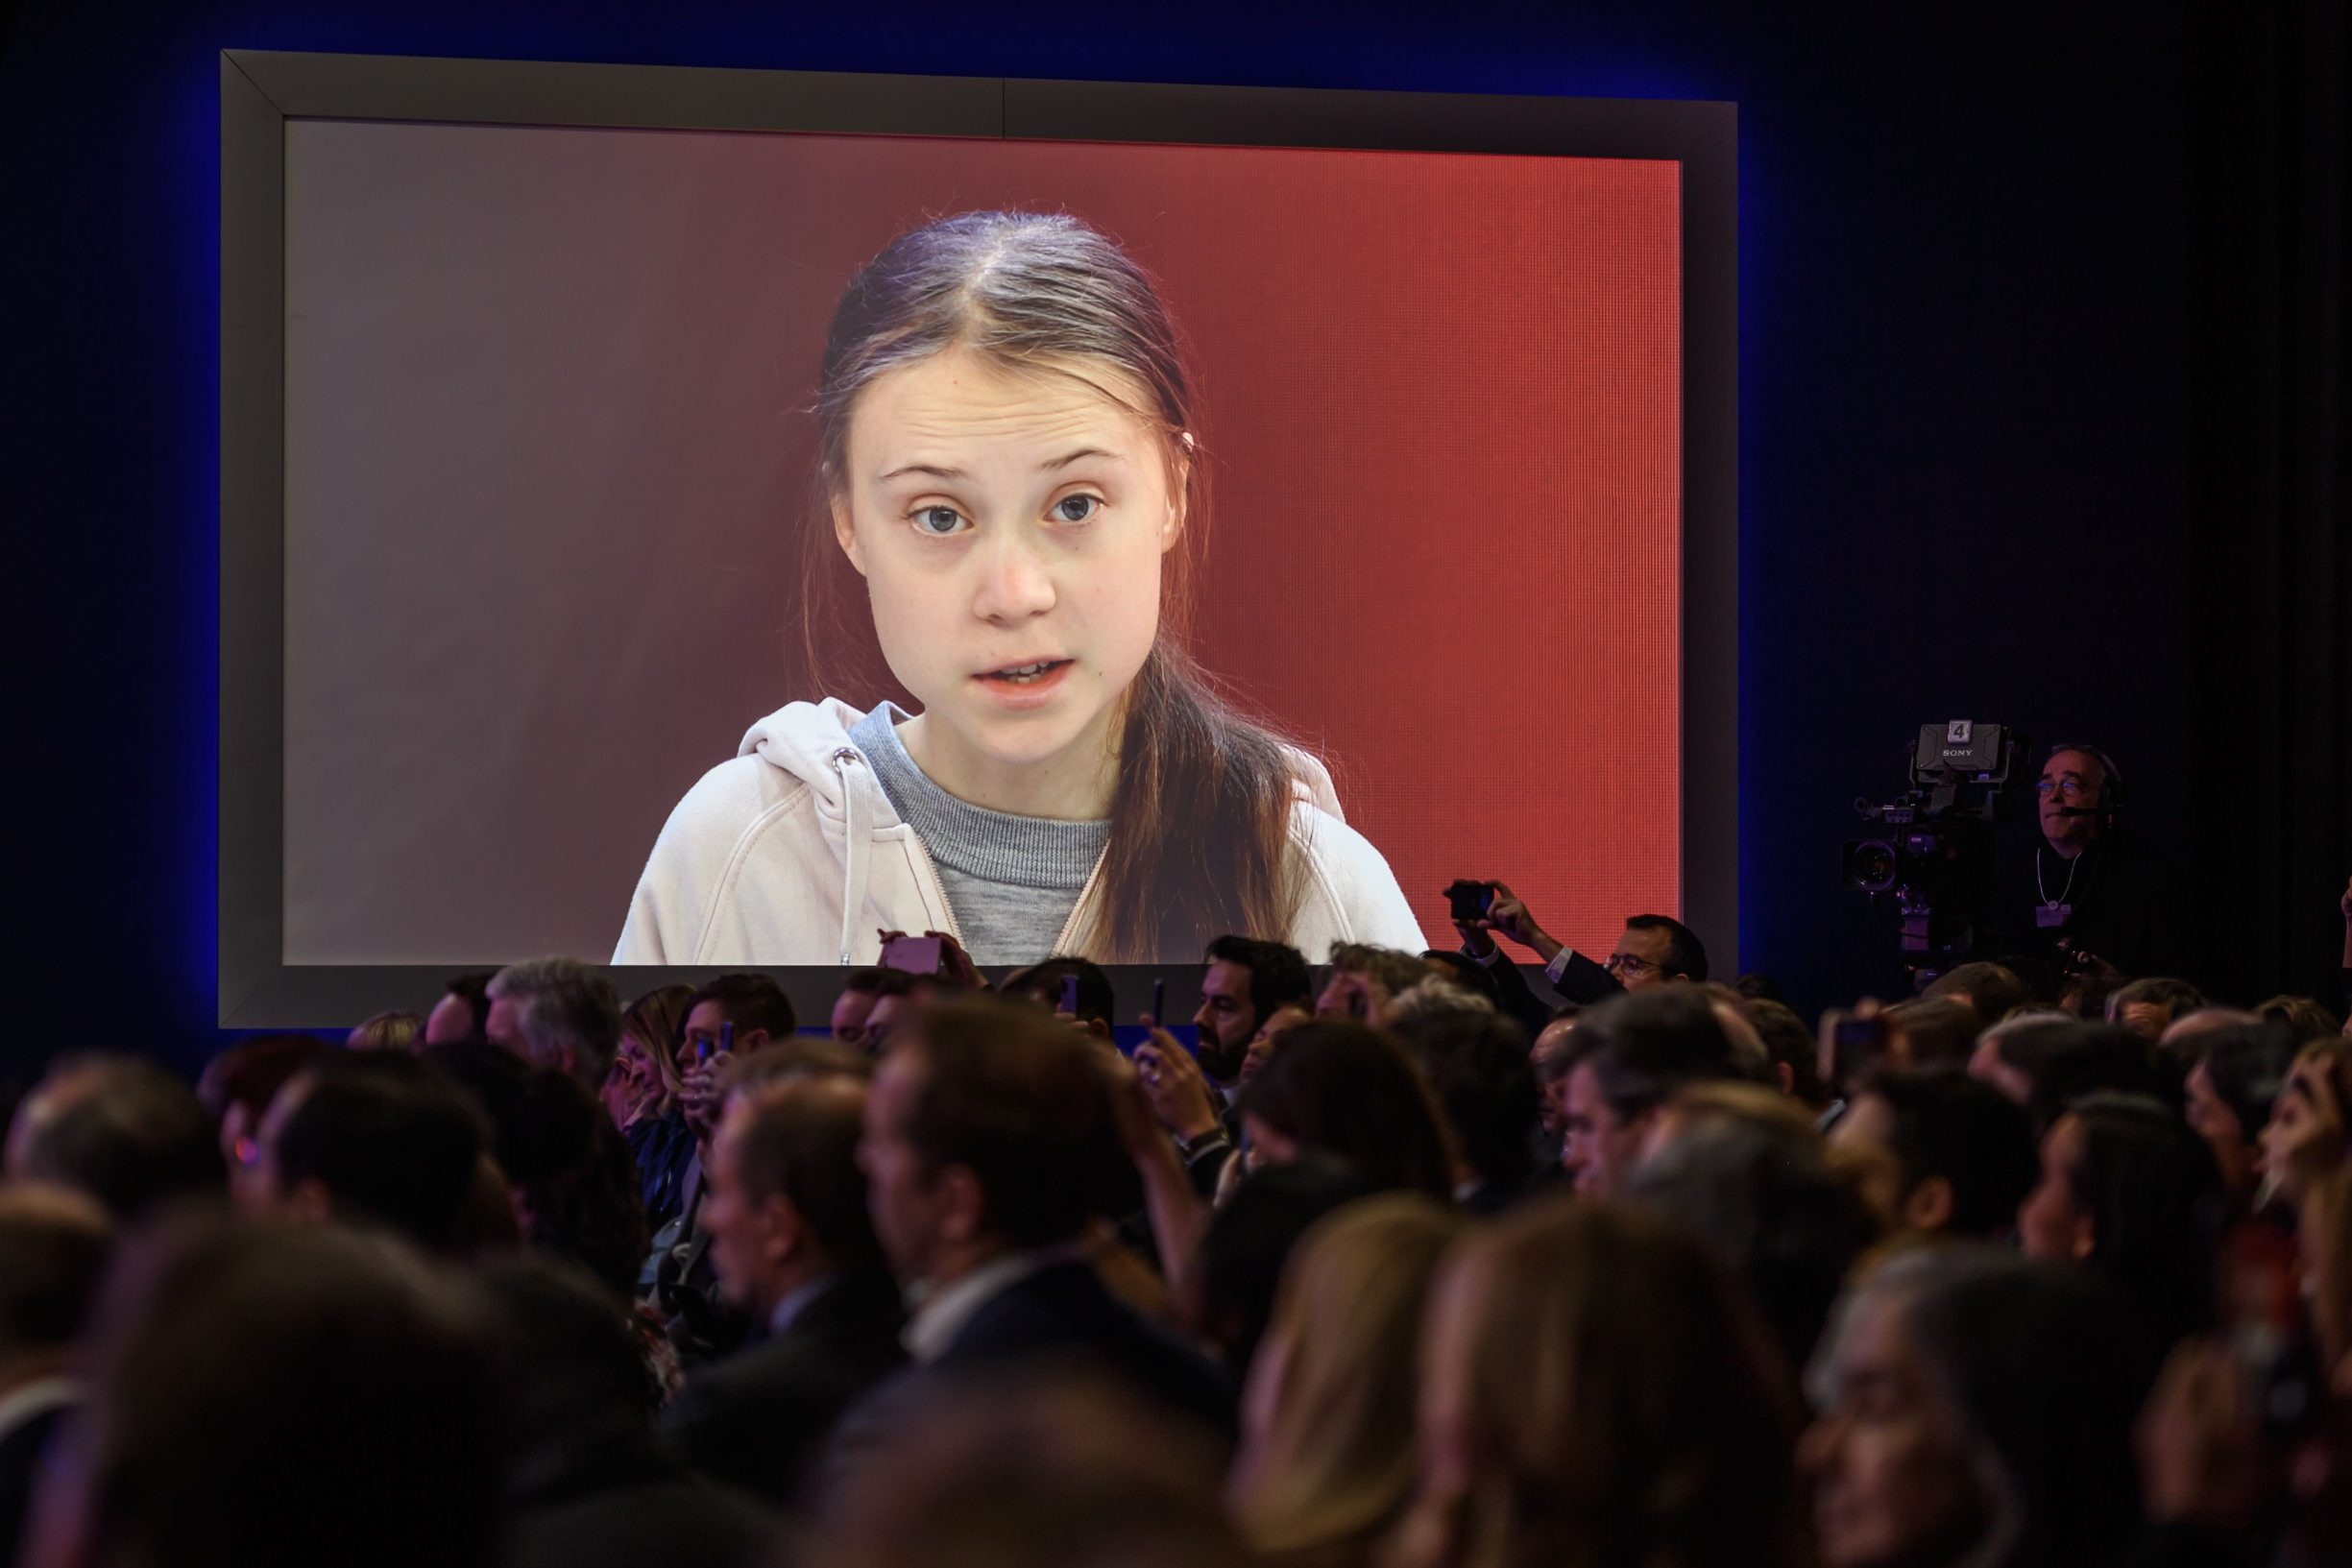 Swedish climate activist Greta Thunberg attends a session at the Congres center during the World Economic Forum (WEF) annual meeting in Davos, on January 21, 2020. (Photo by Fabrice COFFRINI / AFP)